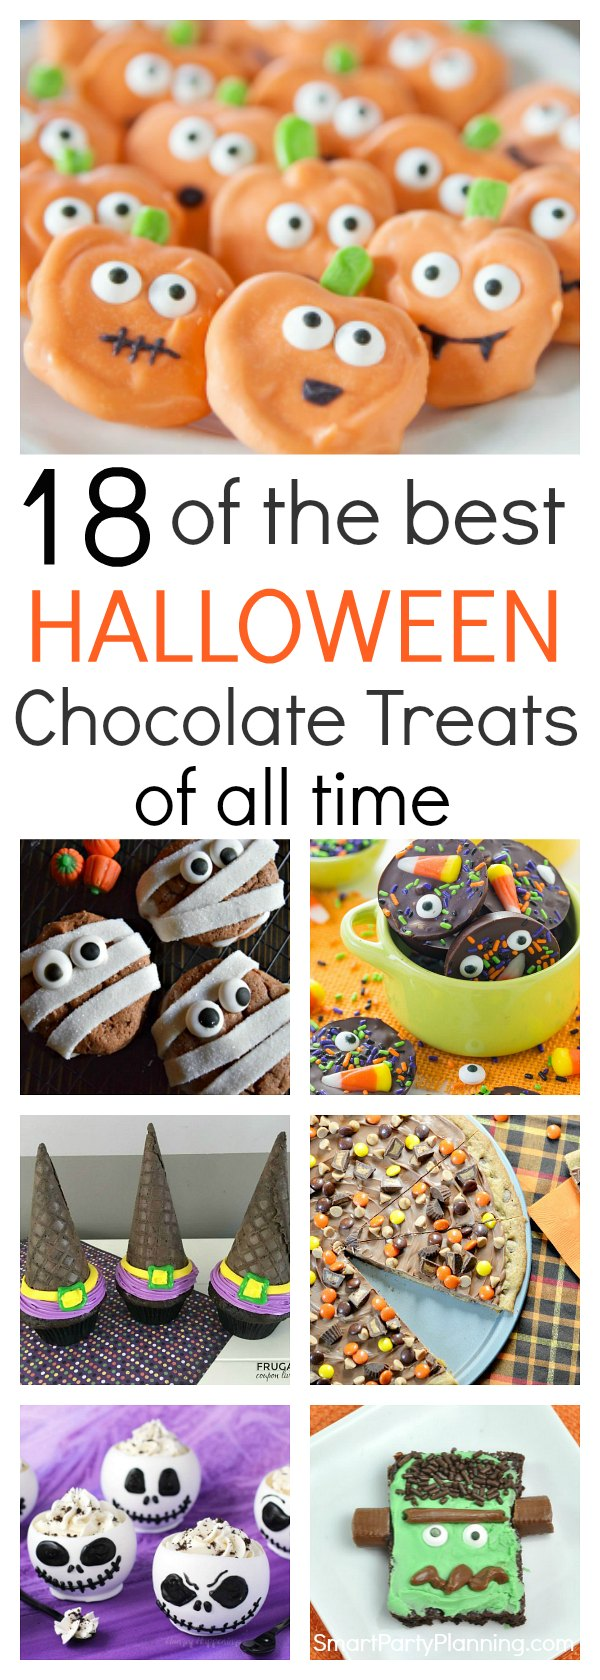 Halloween Chocolate Treats